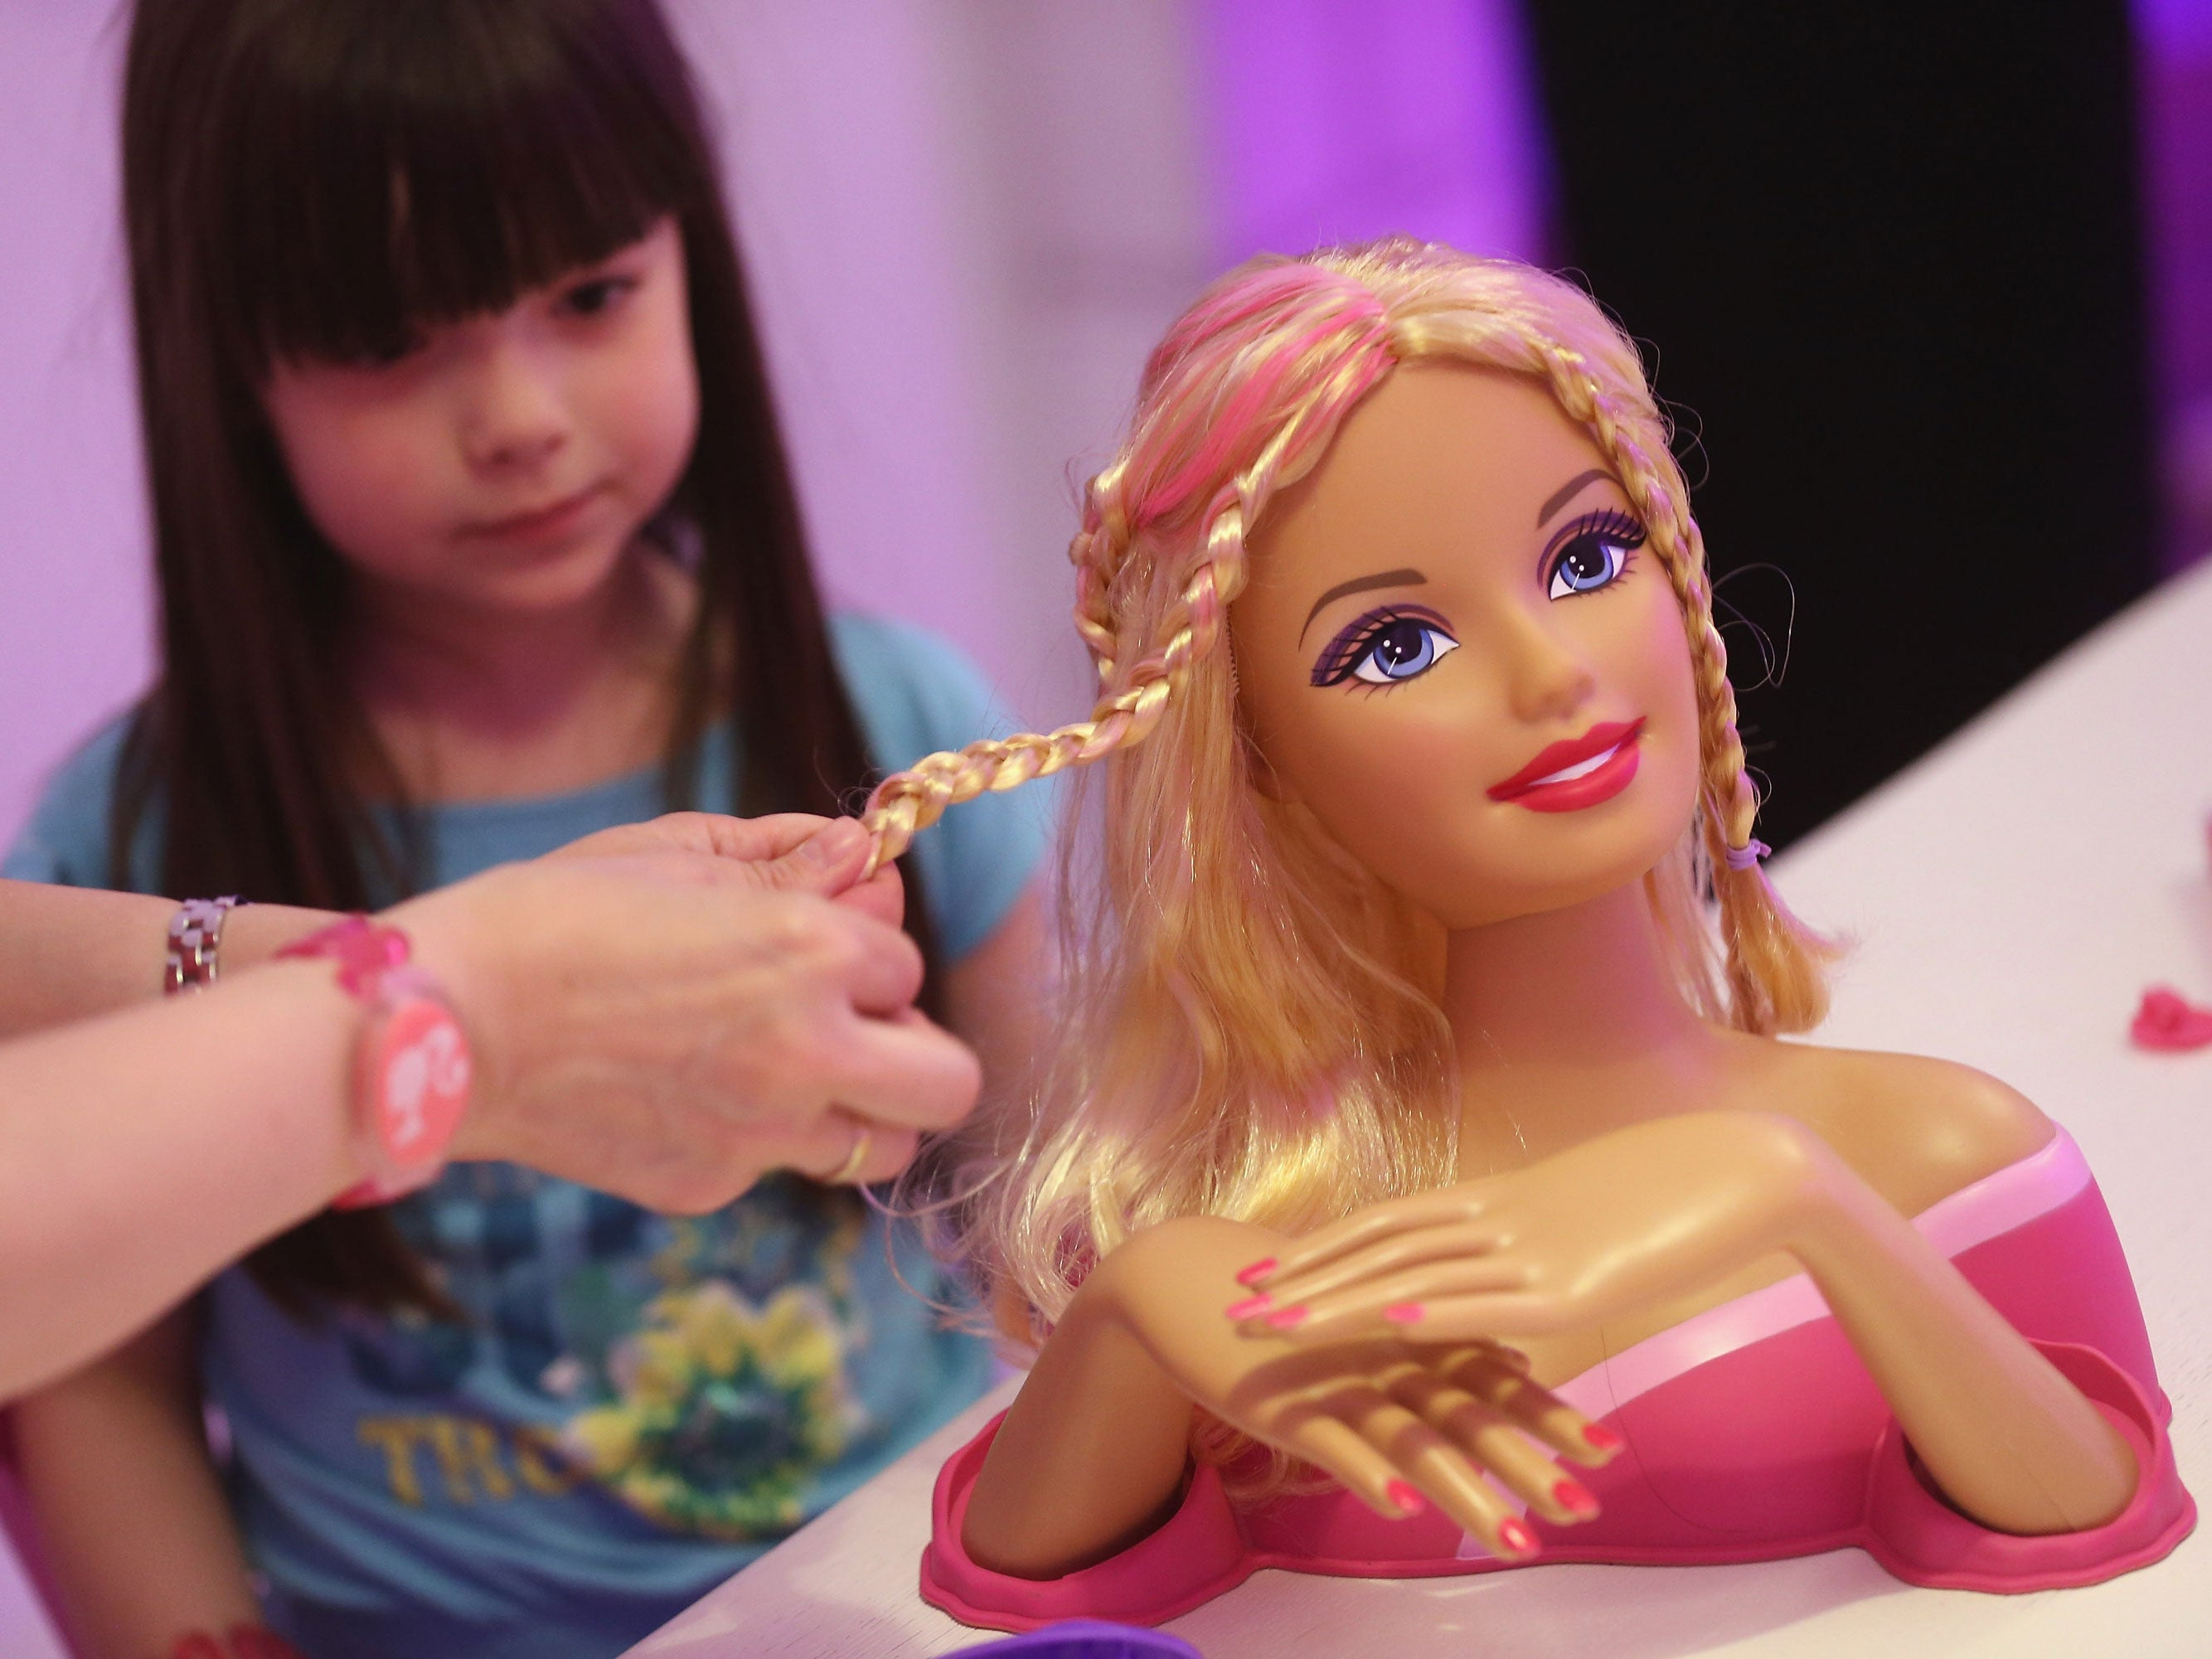 mattel u0027s wifi barbie could be used to spy on children the